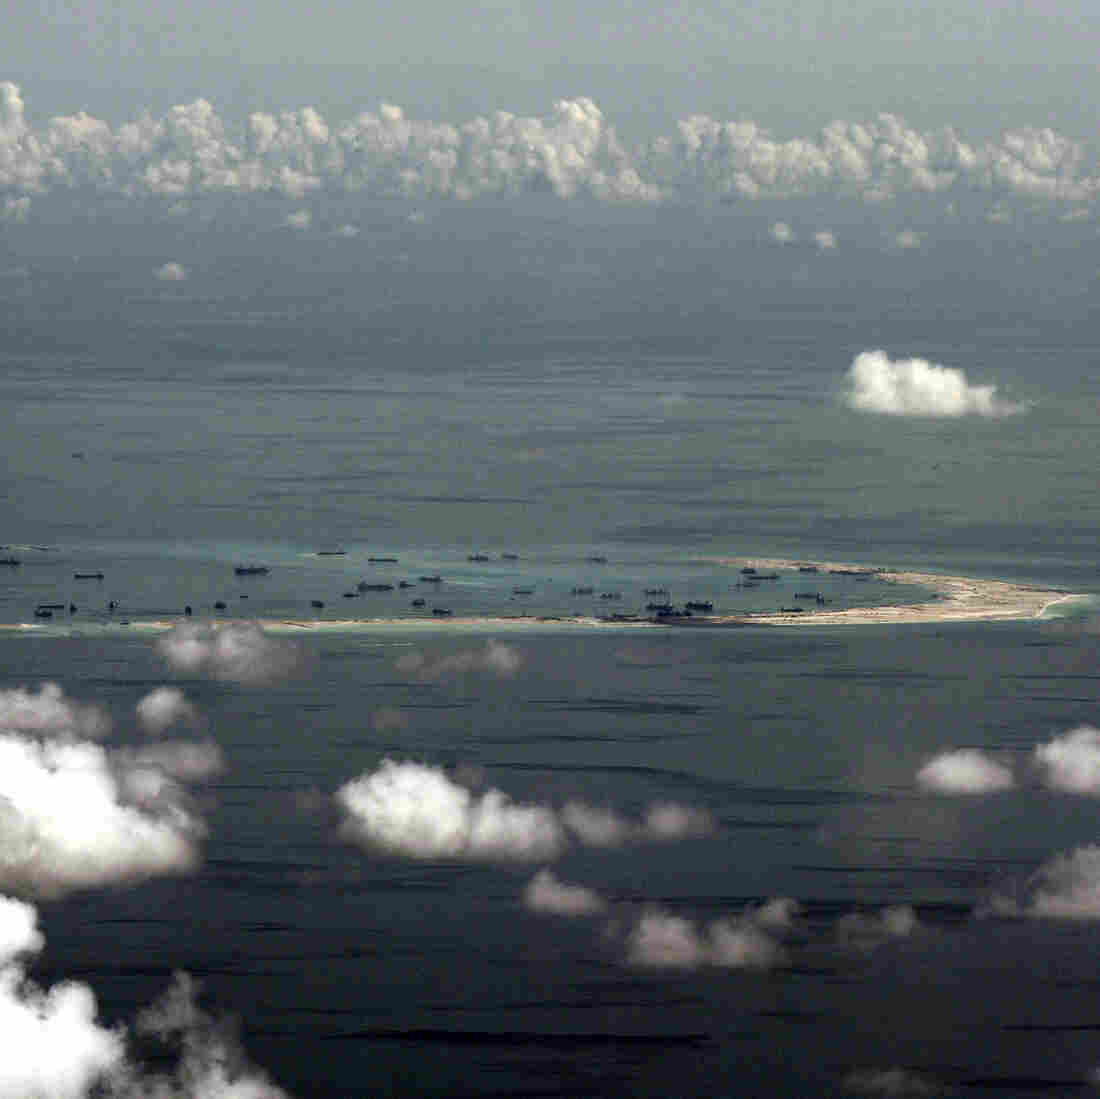 China Condemns U.S. Destroyer's Maneuver In South China Sea